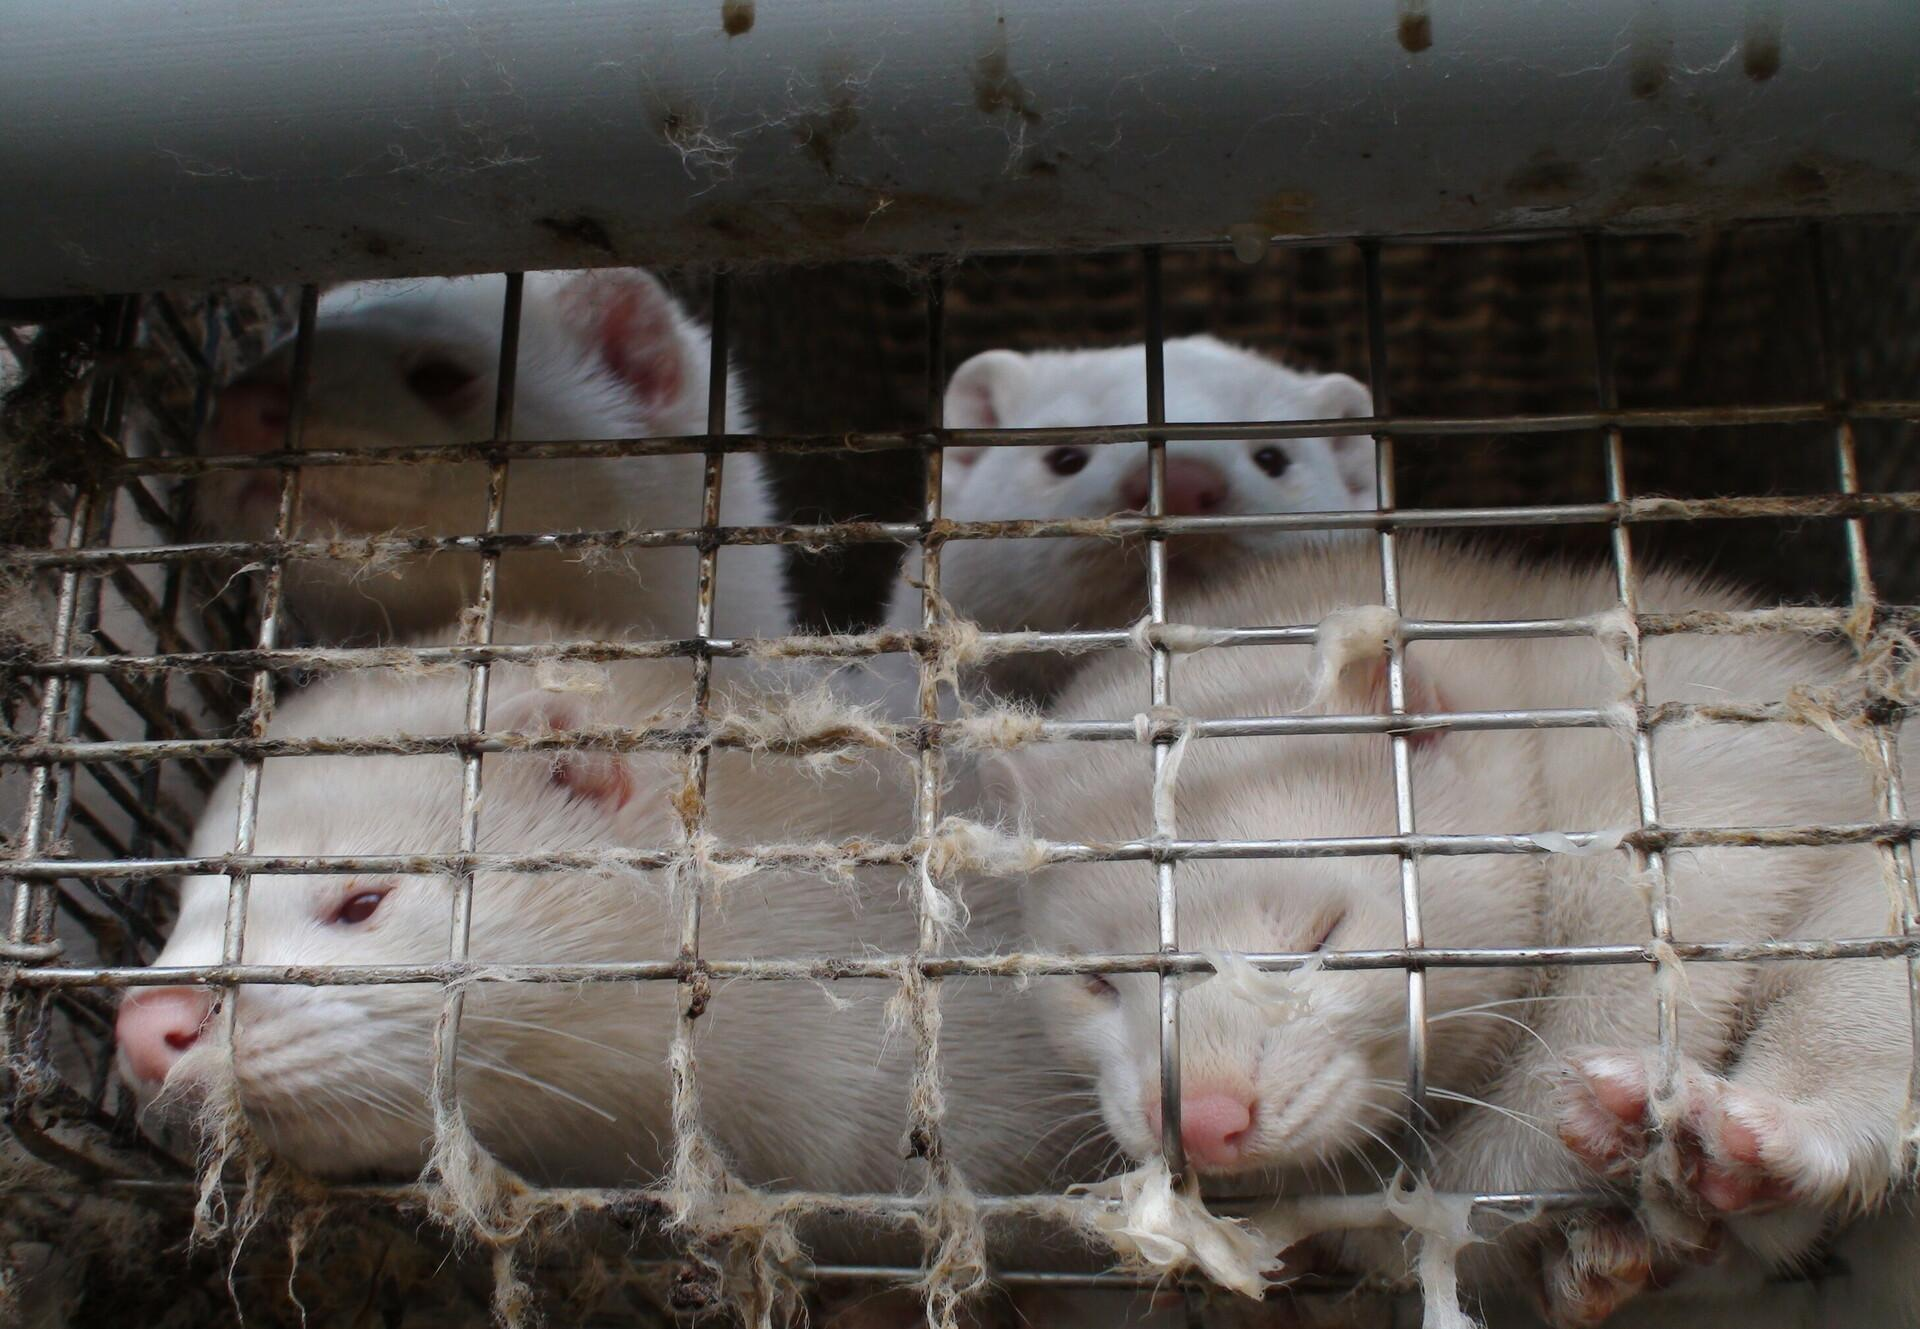 Mink in a small cage